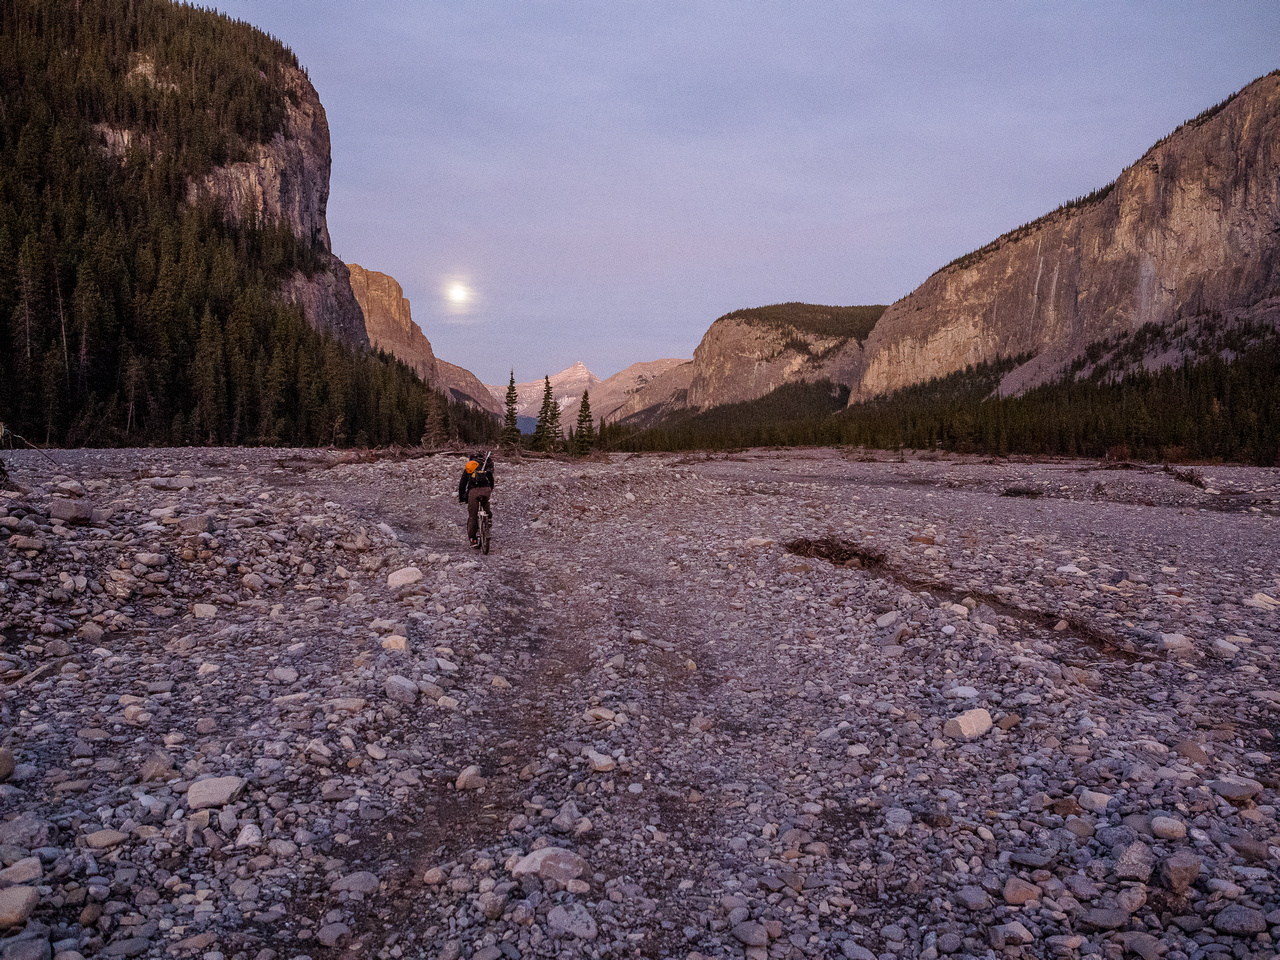 Biking up a surreal landscape along the Ghost River with a very bright moon providing any light we might still need